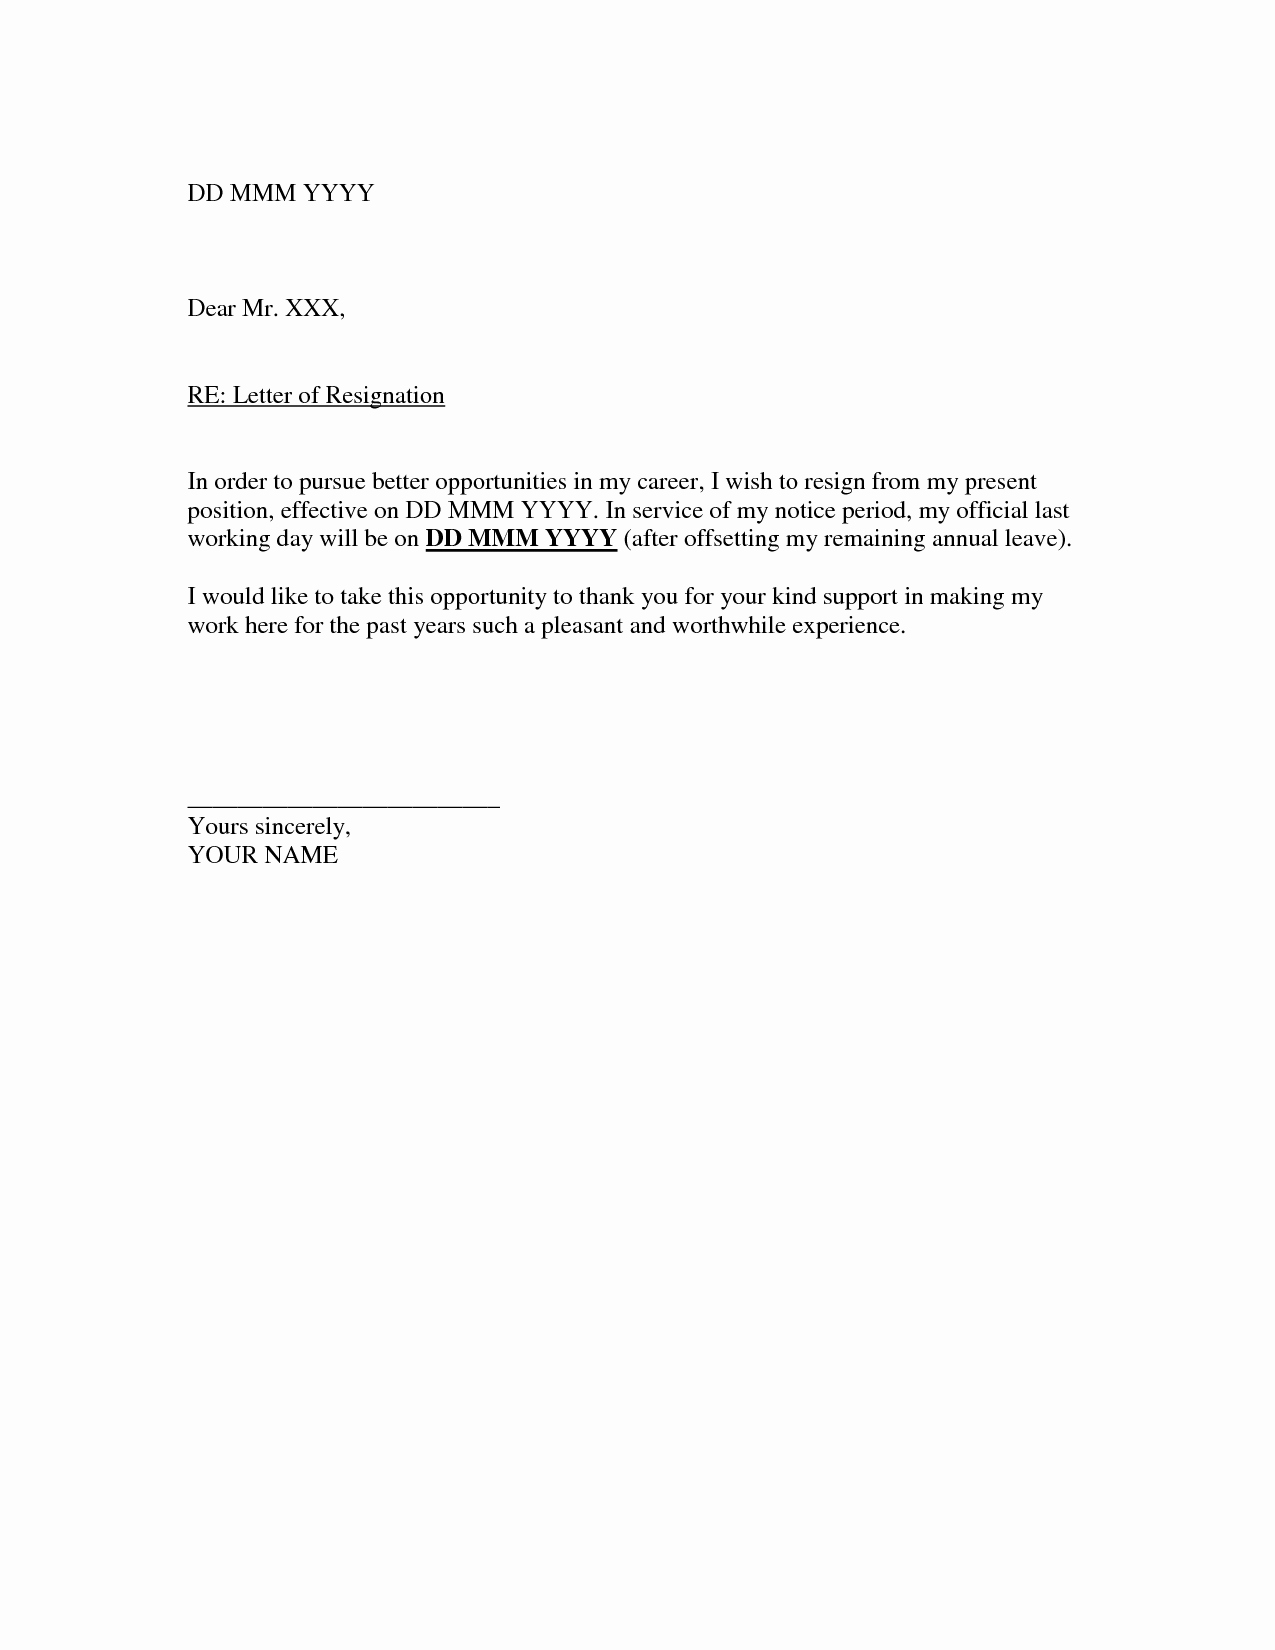 Letter Of Resignation Template Free Awesome Resignation Letter Template